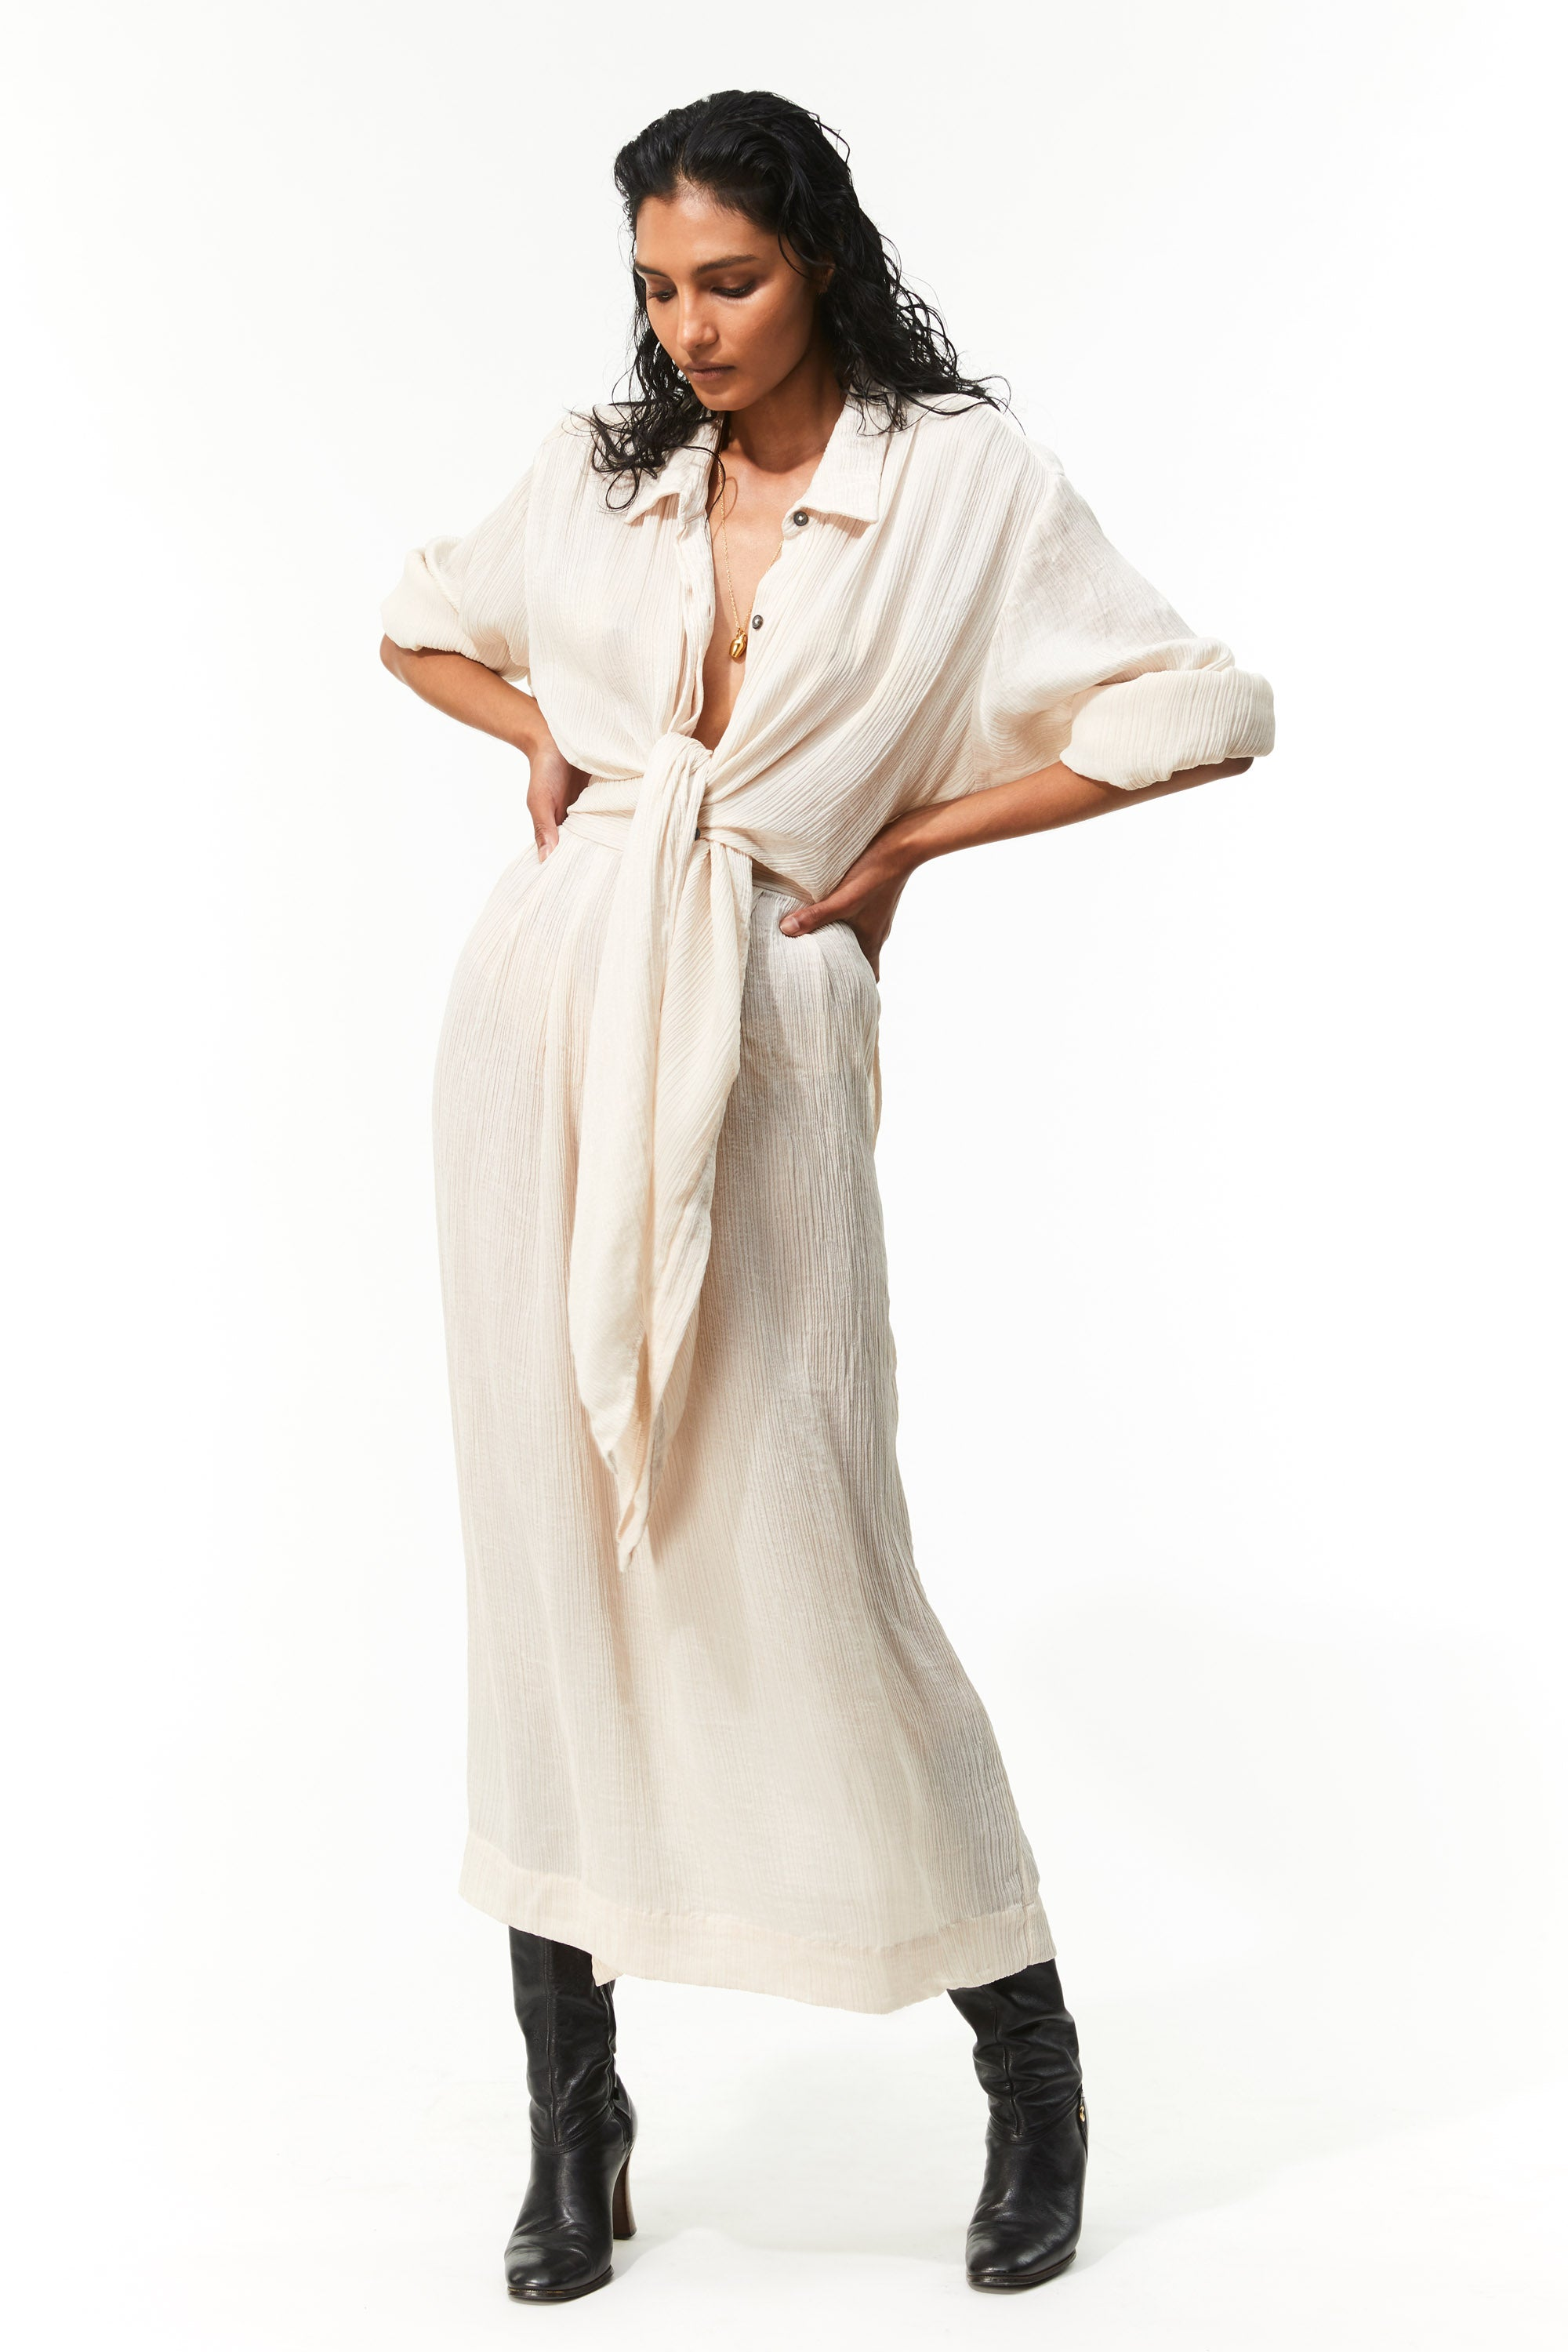 Mara Hoffman Ivory Agata Dress in Tencel Lyocell (front)